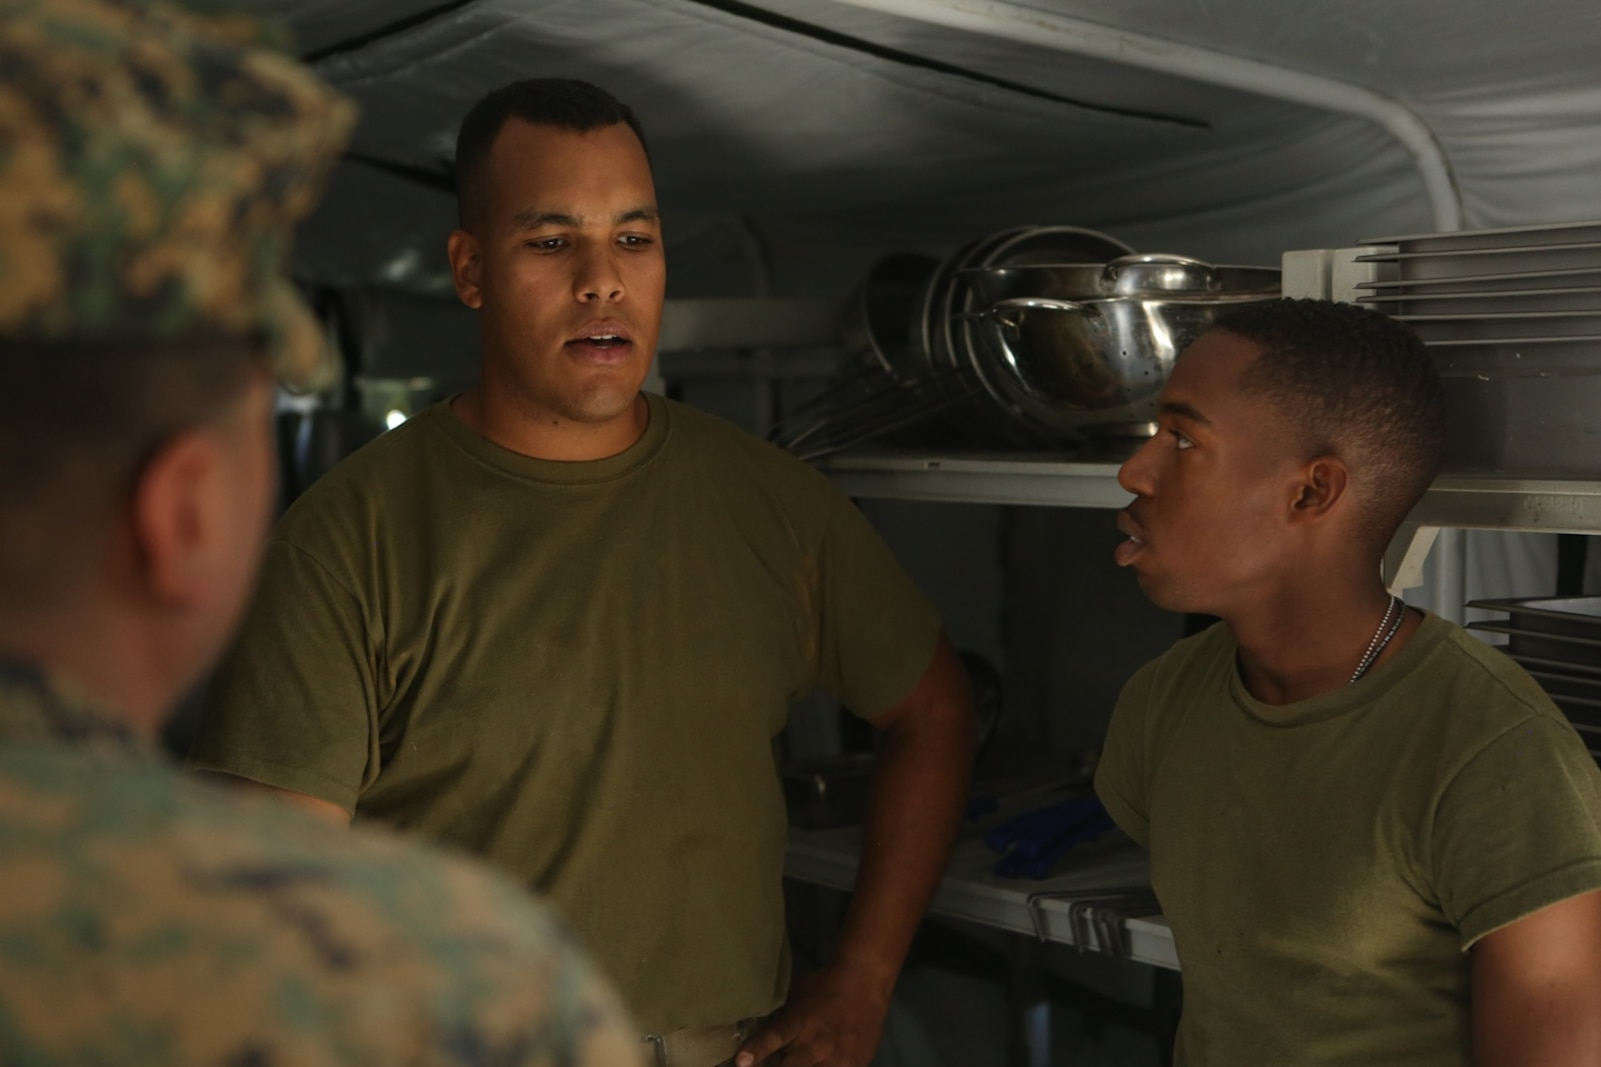 U.S. Marine Lance Cpl. Emmauel Gomezricart and Lance Cpl. Daniel Howell lead medical technicians on a walkthrough of an expeditionary field kitchen during Preventative Medicine Exercise 2016 at Camp Pendleton, Calif., Nov. 10, 2016. The medical technicians inspected for sanitation, operational ability of the equipment and for the presence of vermin. 1st Medical Battalion used this exercise to better prepare their Sailors for deployments and to practice accomplishing an objective in a field environment. Gomezricart and Howell are food service specialists with Food Service Company, Headquarters Regiment, 1st Marine Logistics Group. (U.S. Marine Corps photo by Lance Cpl. Joseph Sorci)